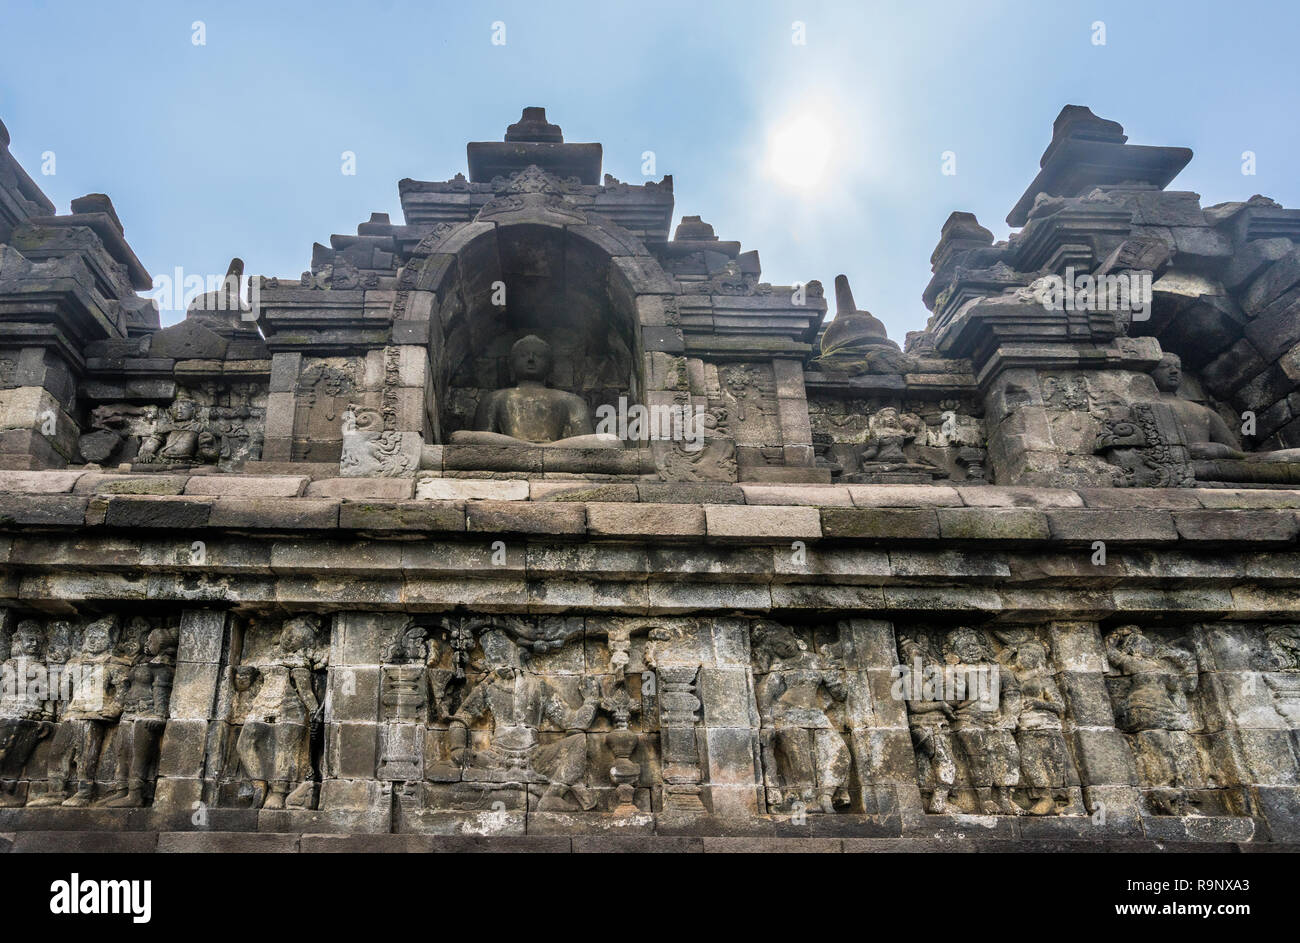 bas-relief panels with narratives of Buddhist mythology and life in Java of the period below niches with sitting Buddha statues on the terraces of 9th - Stock Image